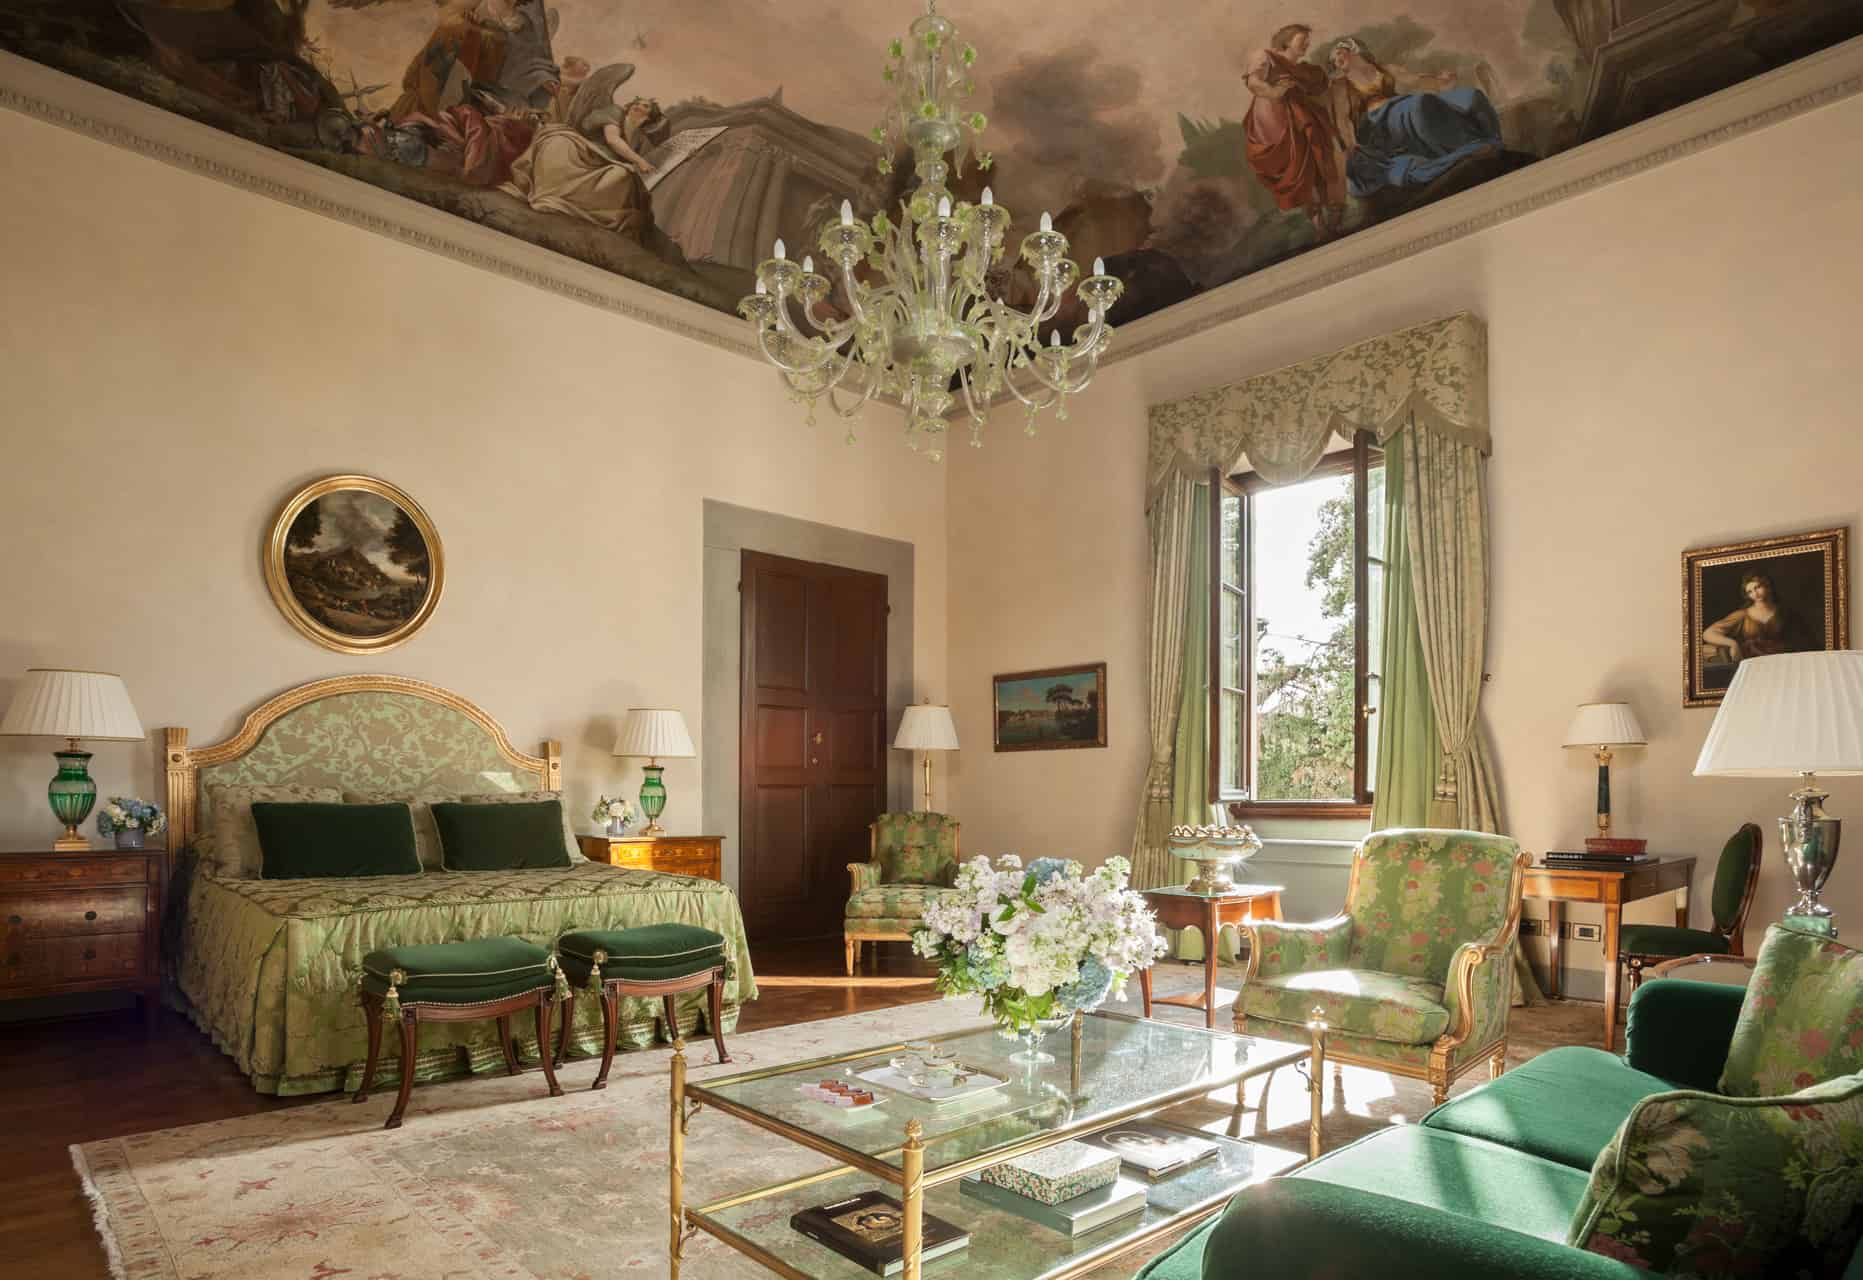 The Four Seasons Florence Hotel in Italy Leisure Time Tours